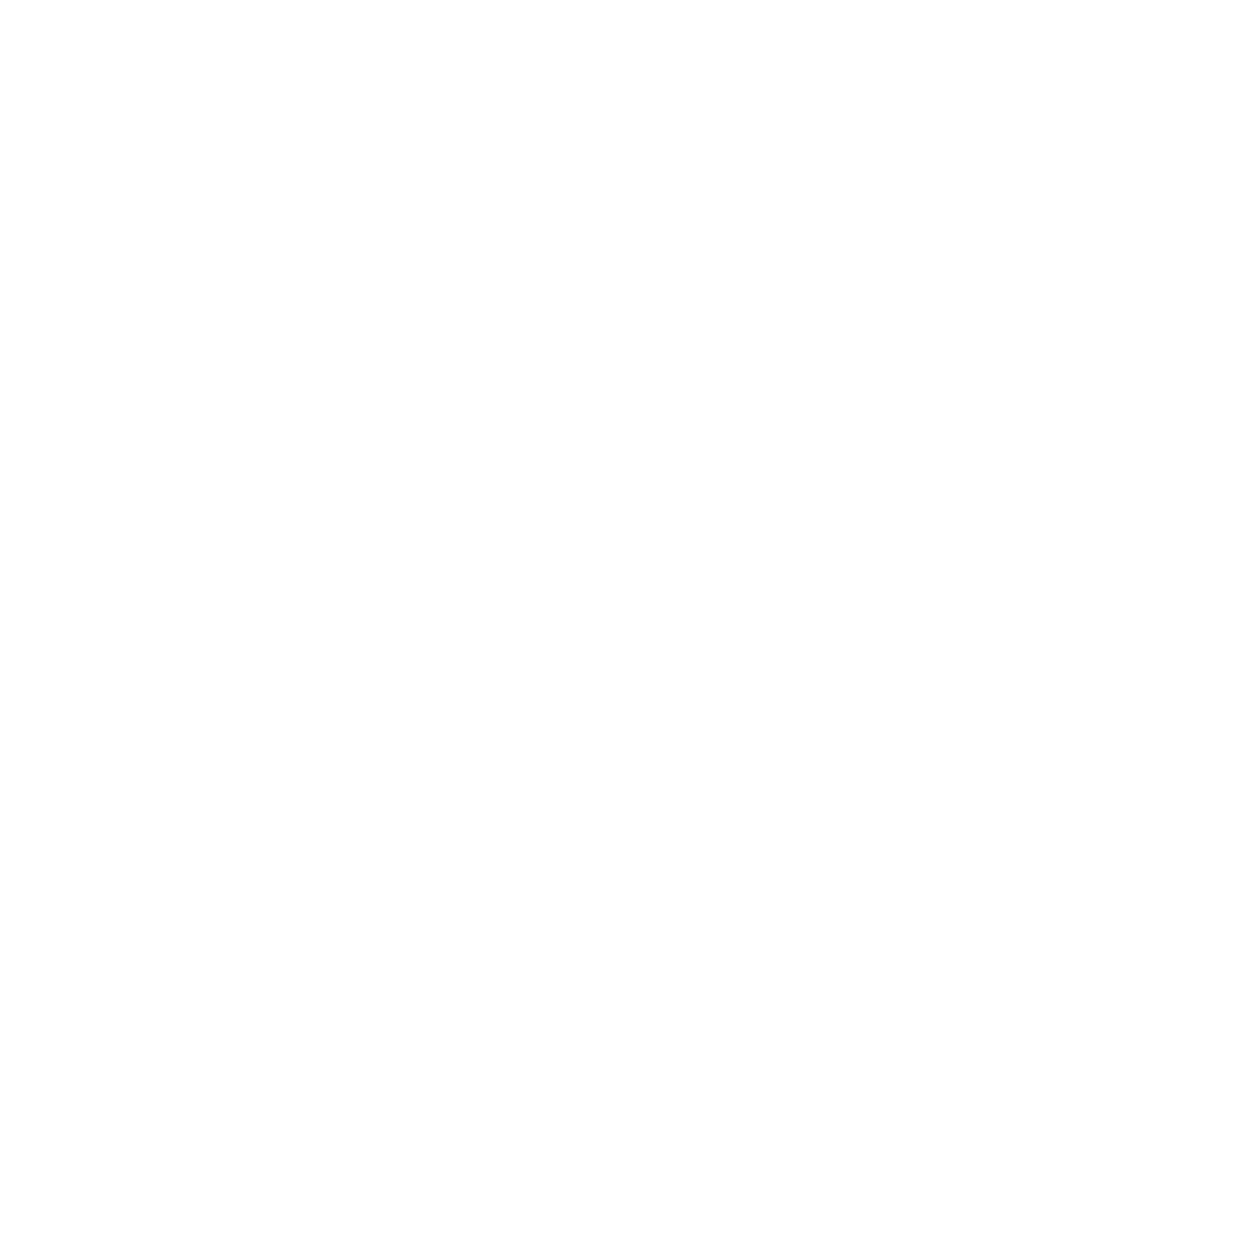 HD Black And White Fcb Logo 6 By Robert.